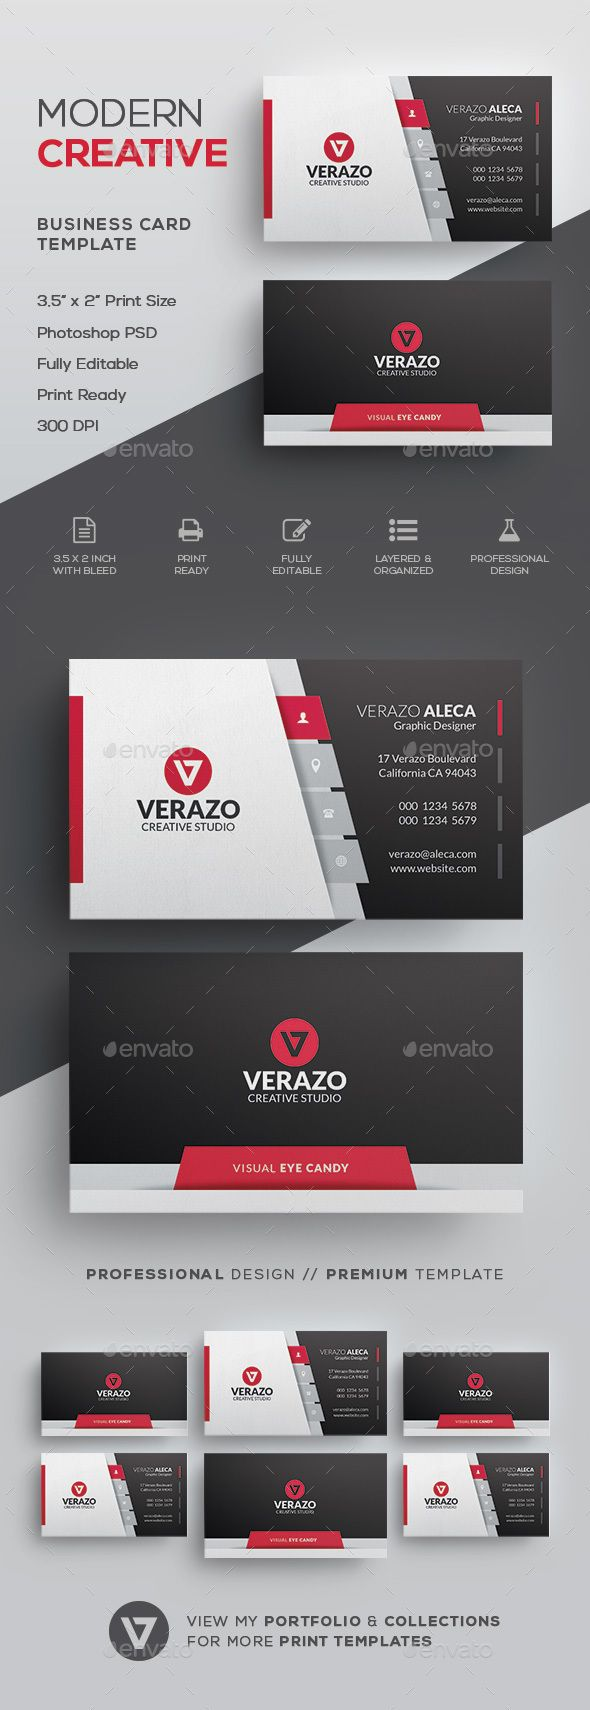 Creative Modern Business Card Template by verazo Need more high quality business card? View my Business Card Templates Collection OR Save Money! Buy Business Card Bundle for only